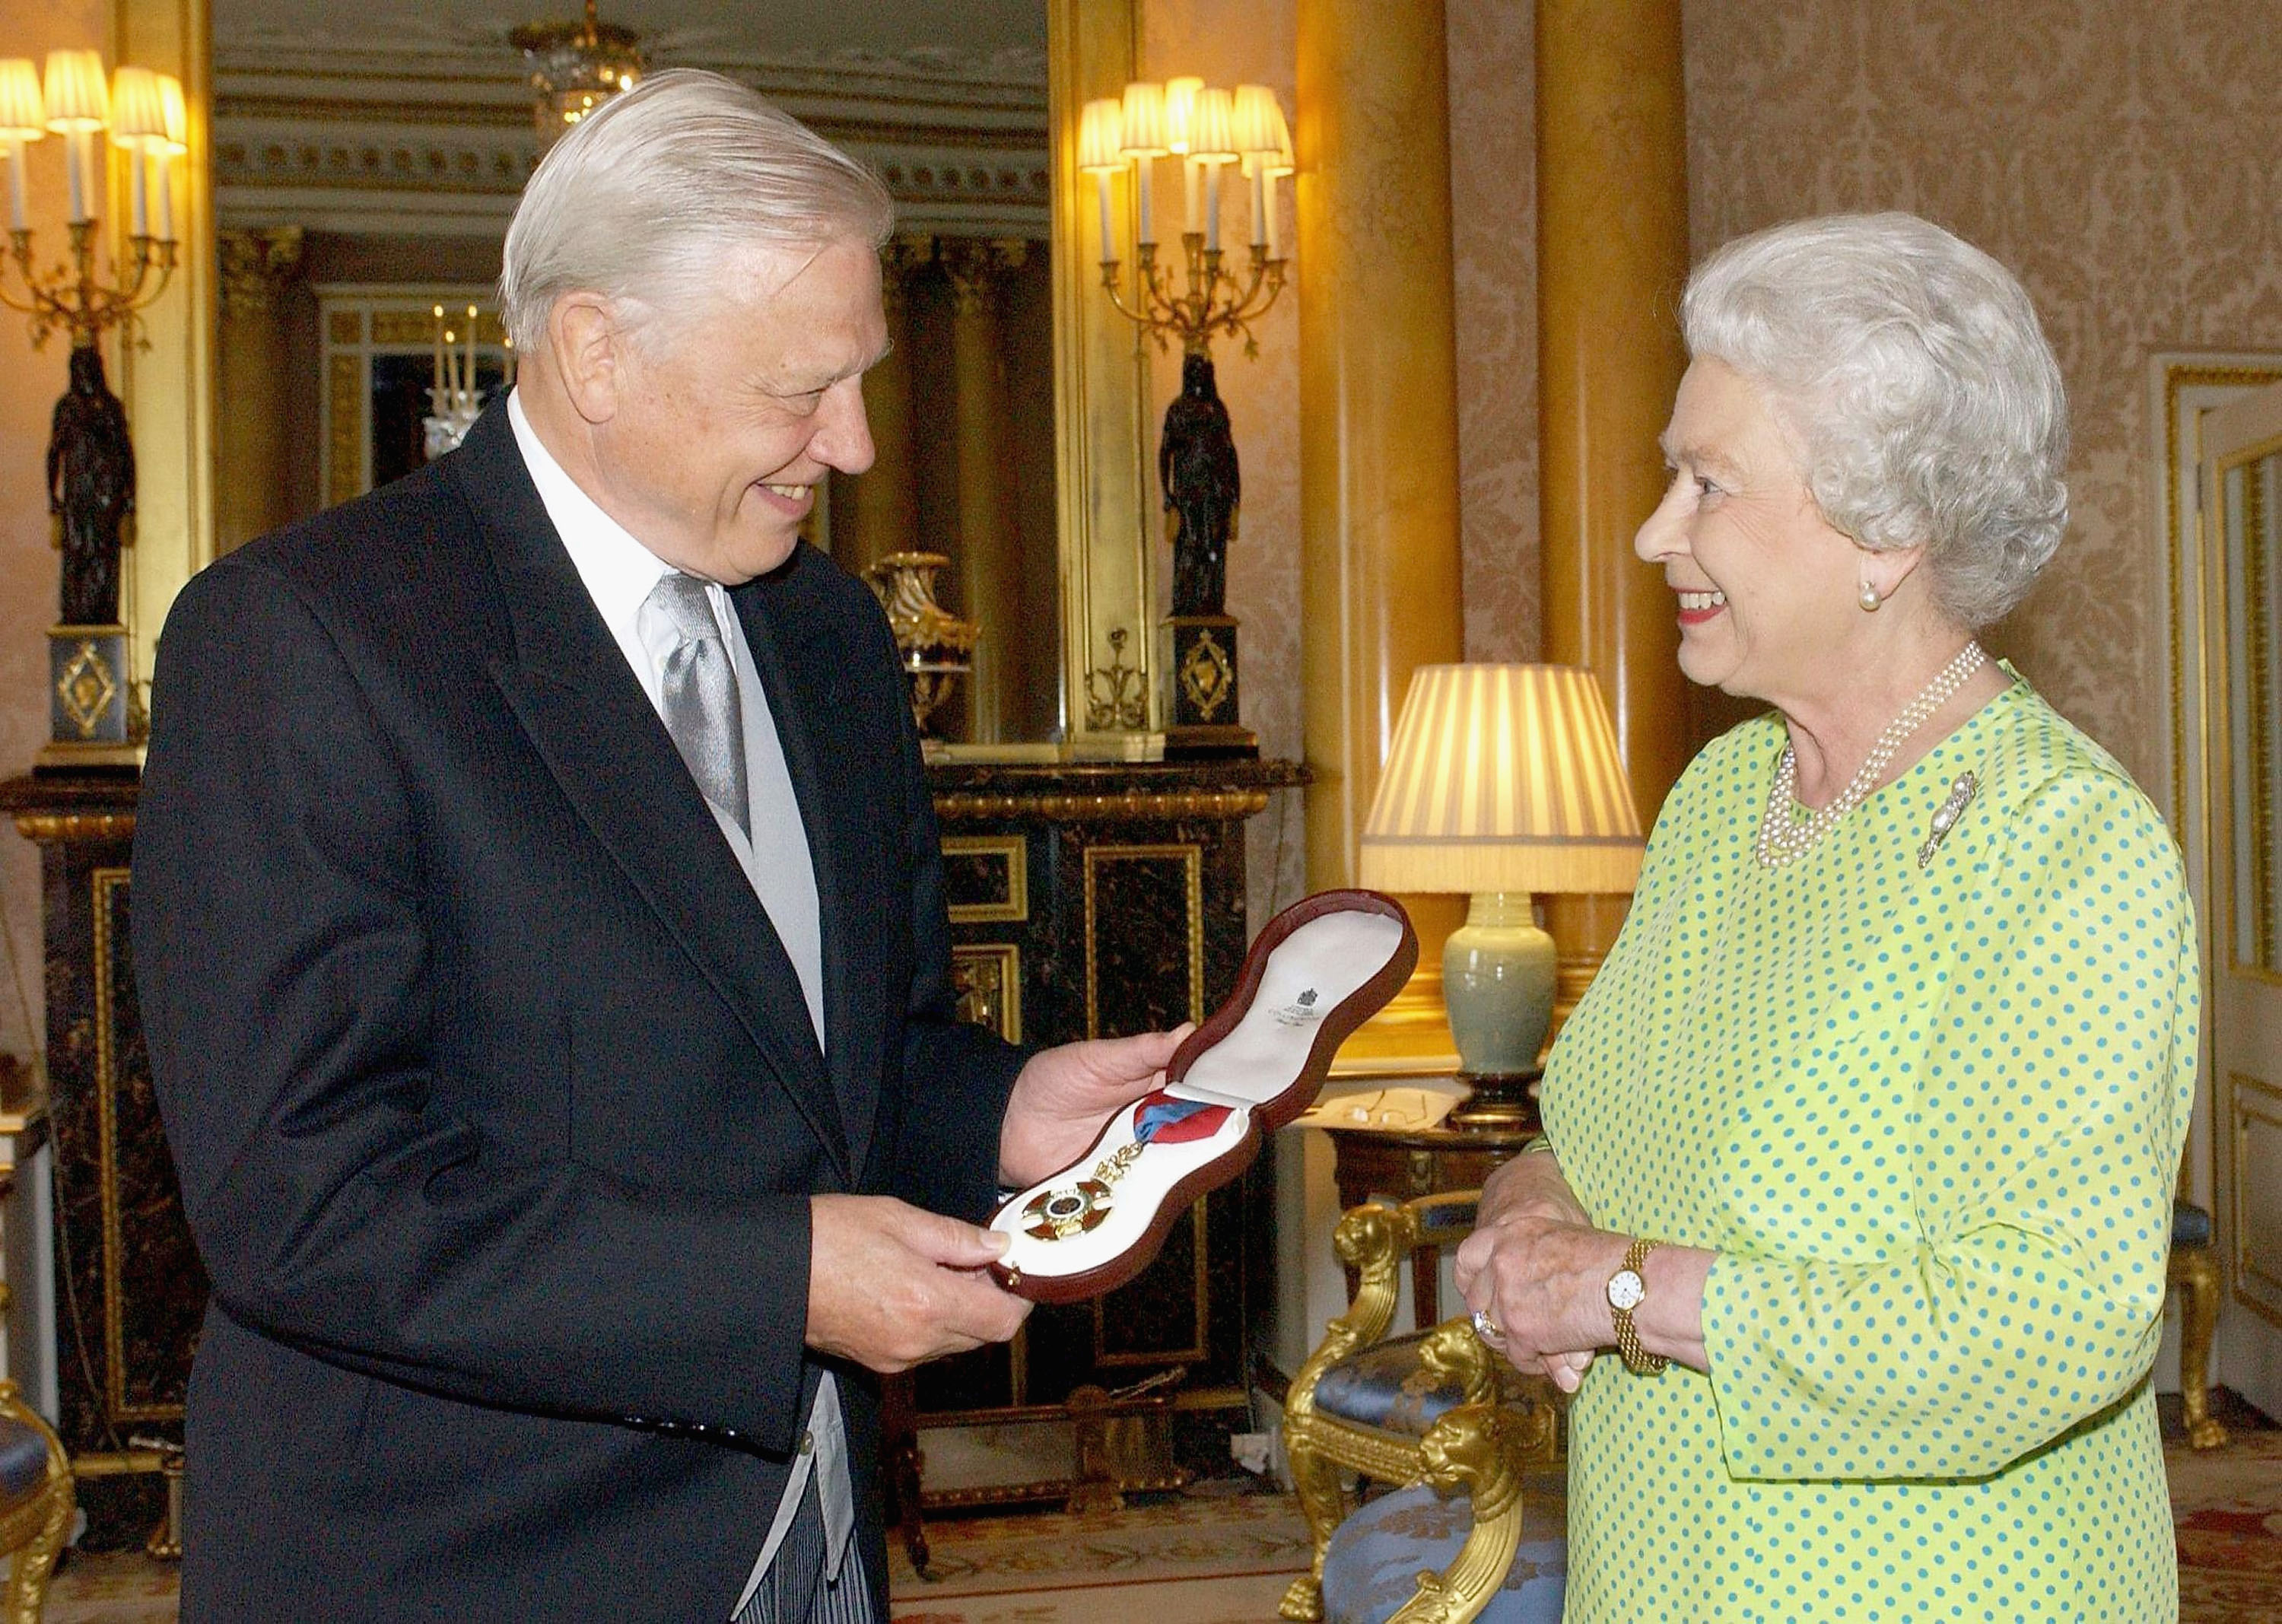 The Queen declares war on plastic after David Attenborough documentary